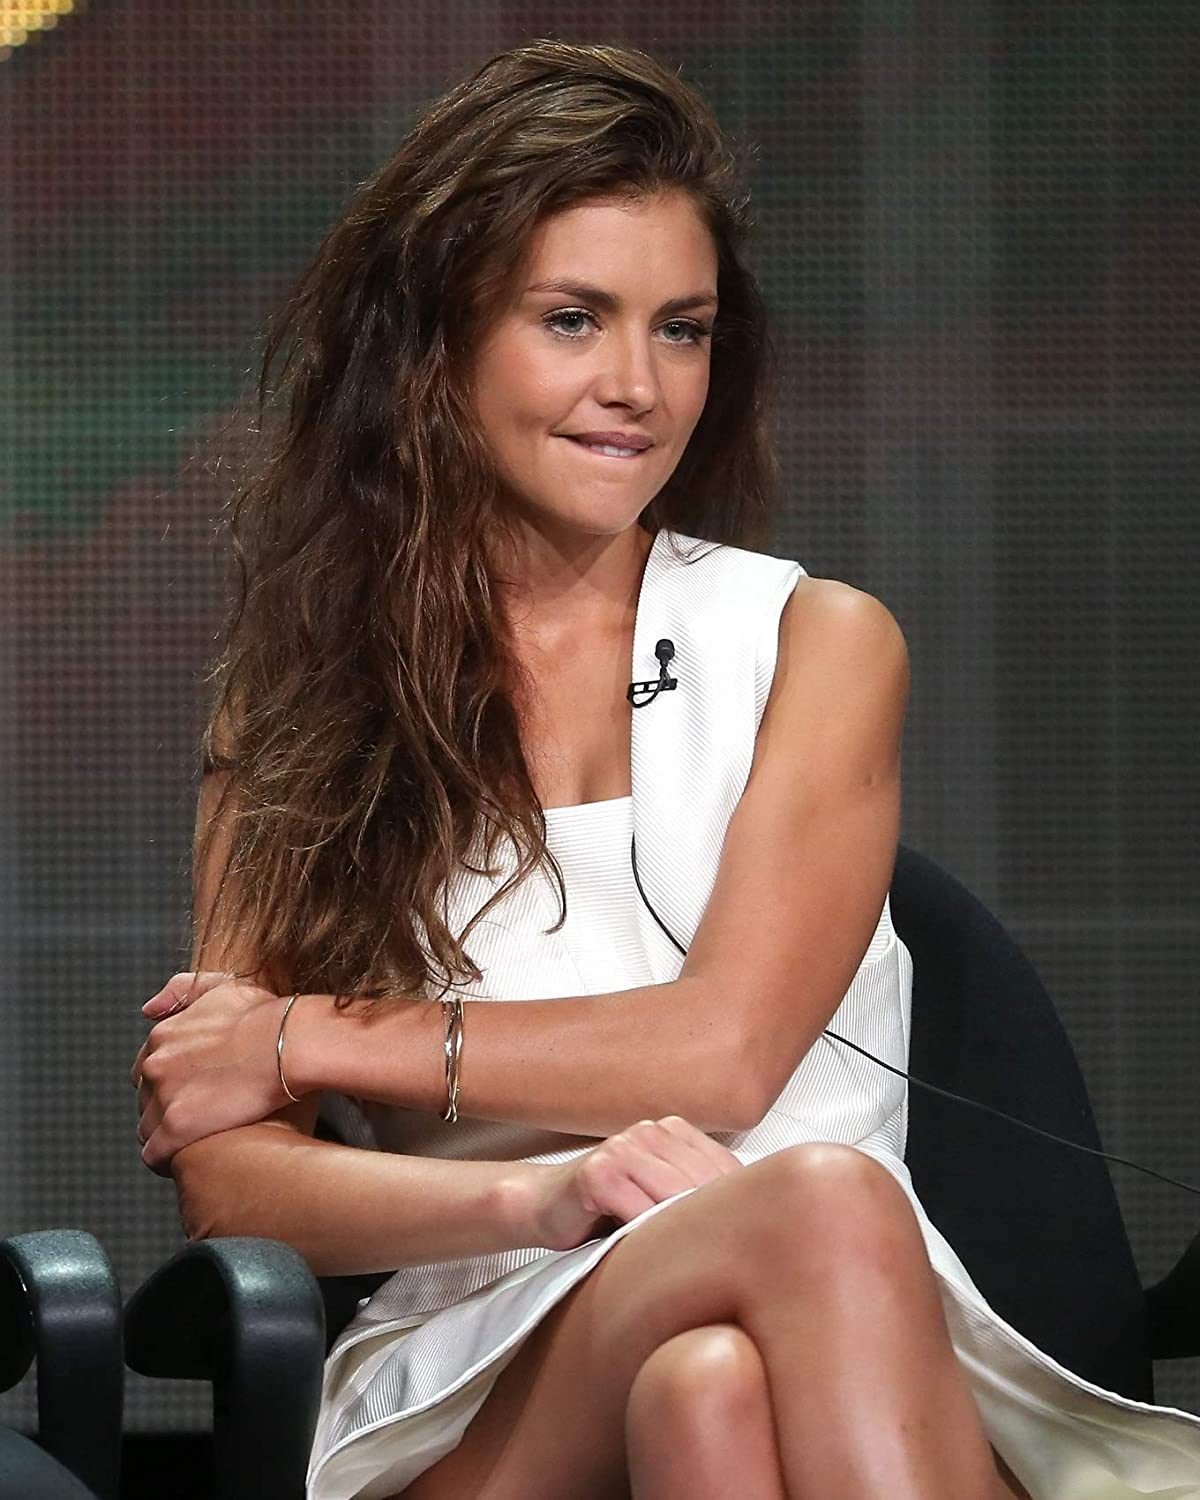 Amazon.com : Hannah Ware 8 x 10 * 8x10 GLOSSY Photo Picture : Everything Else